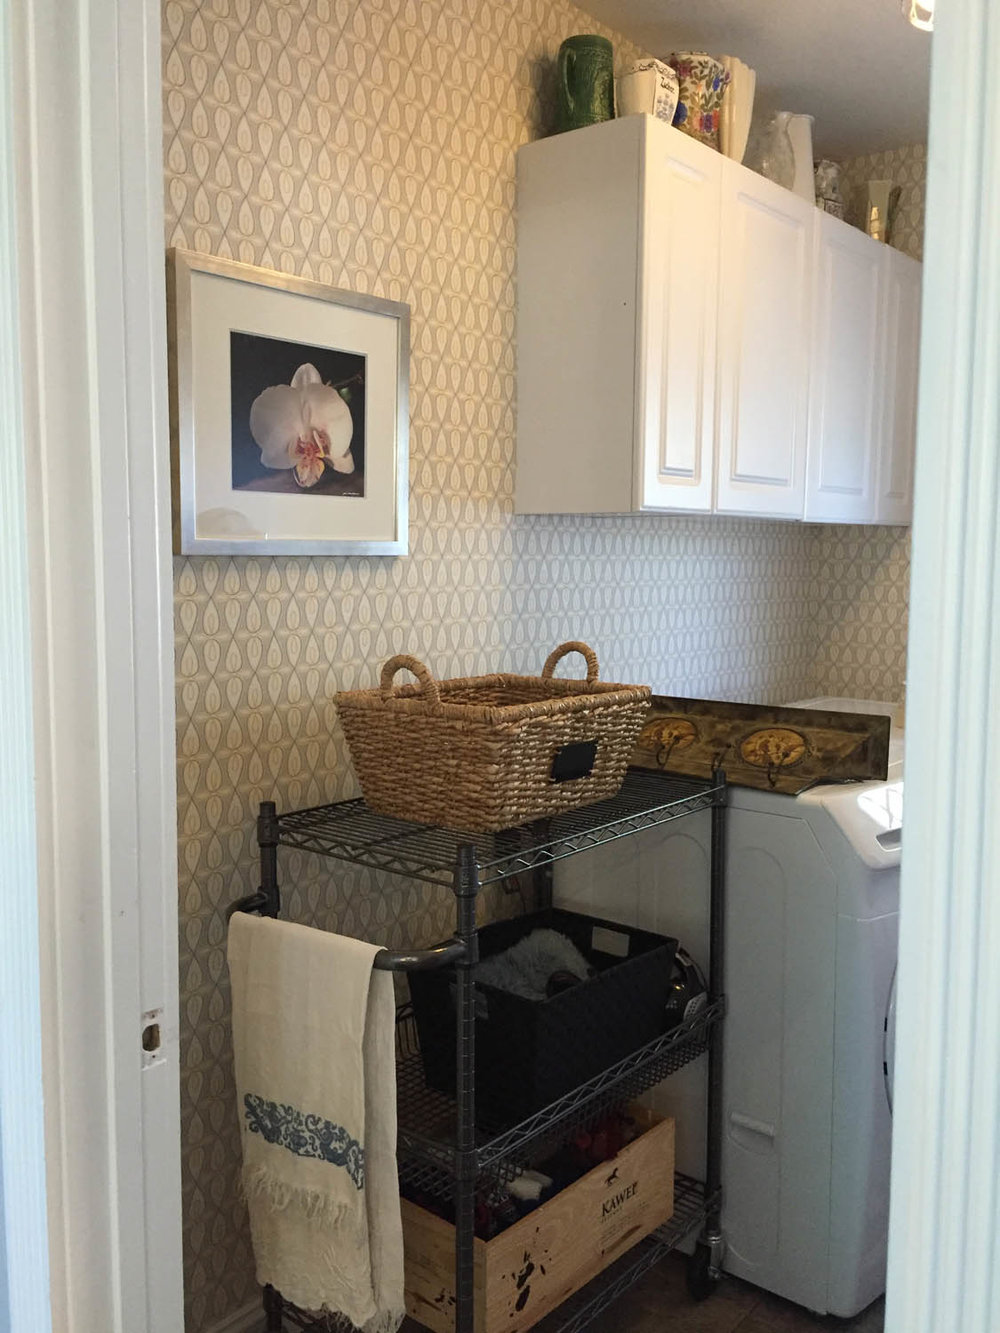 Finished wallpapered laundry room with washer and dryer installed